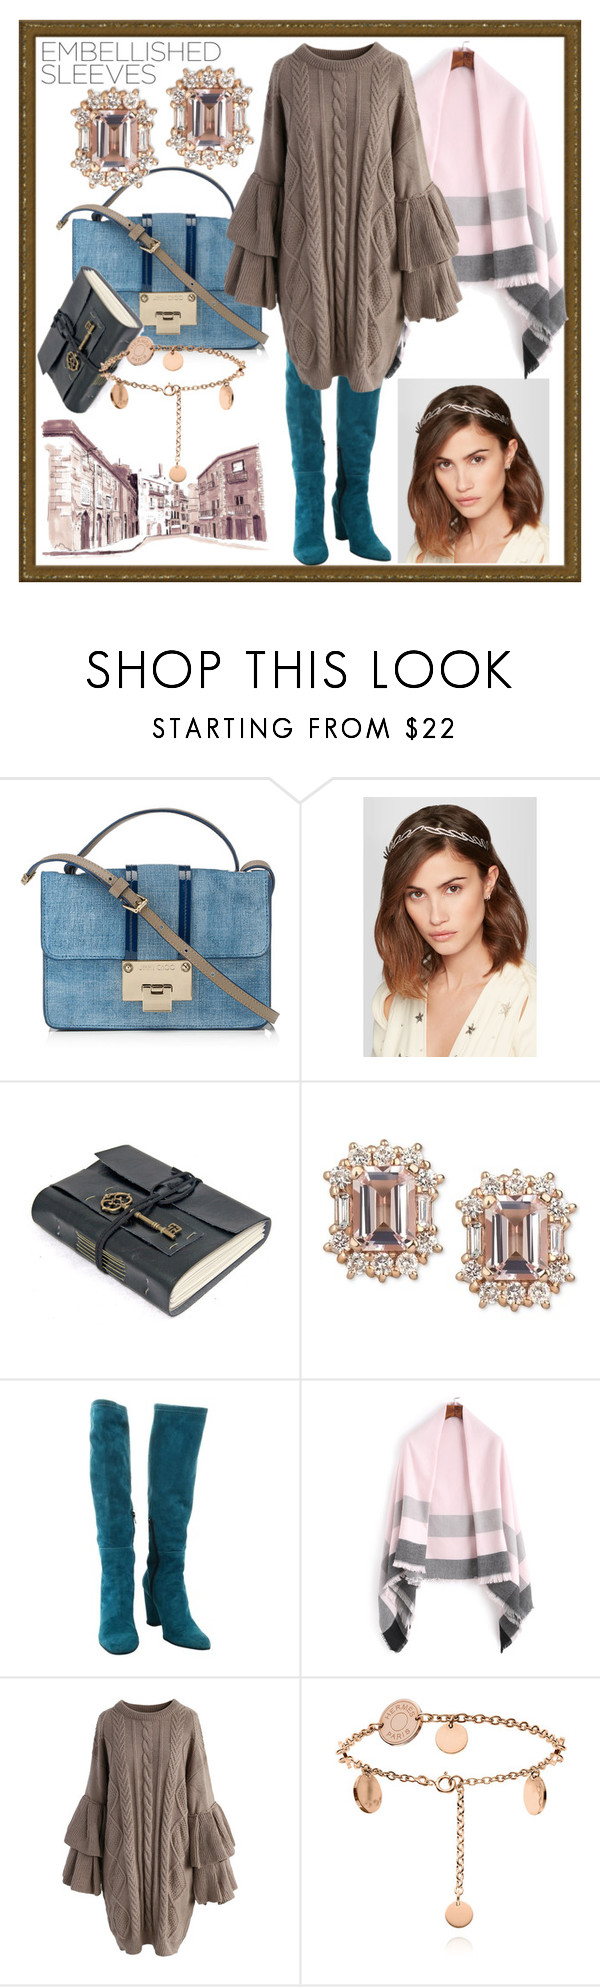 """""""l'artiste"""" by angelasauntie ❤ liked on Polyvore featuring Jimmy Choo, Jennifer Behr, Hogan, Chicwish and embellishedsleeves"""